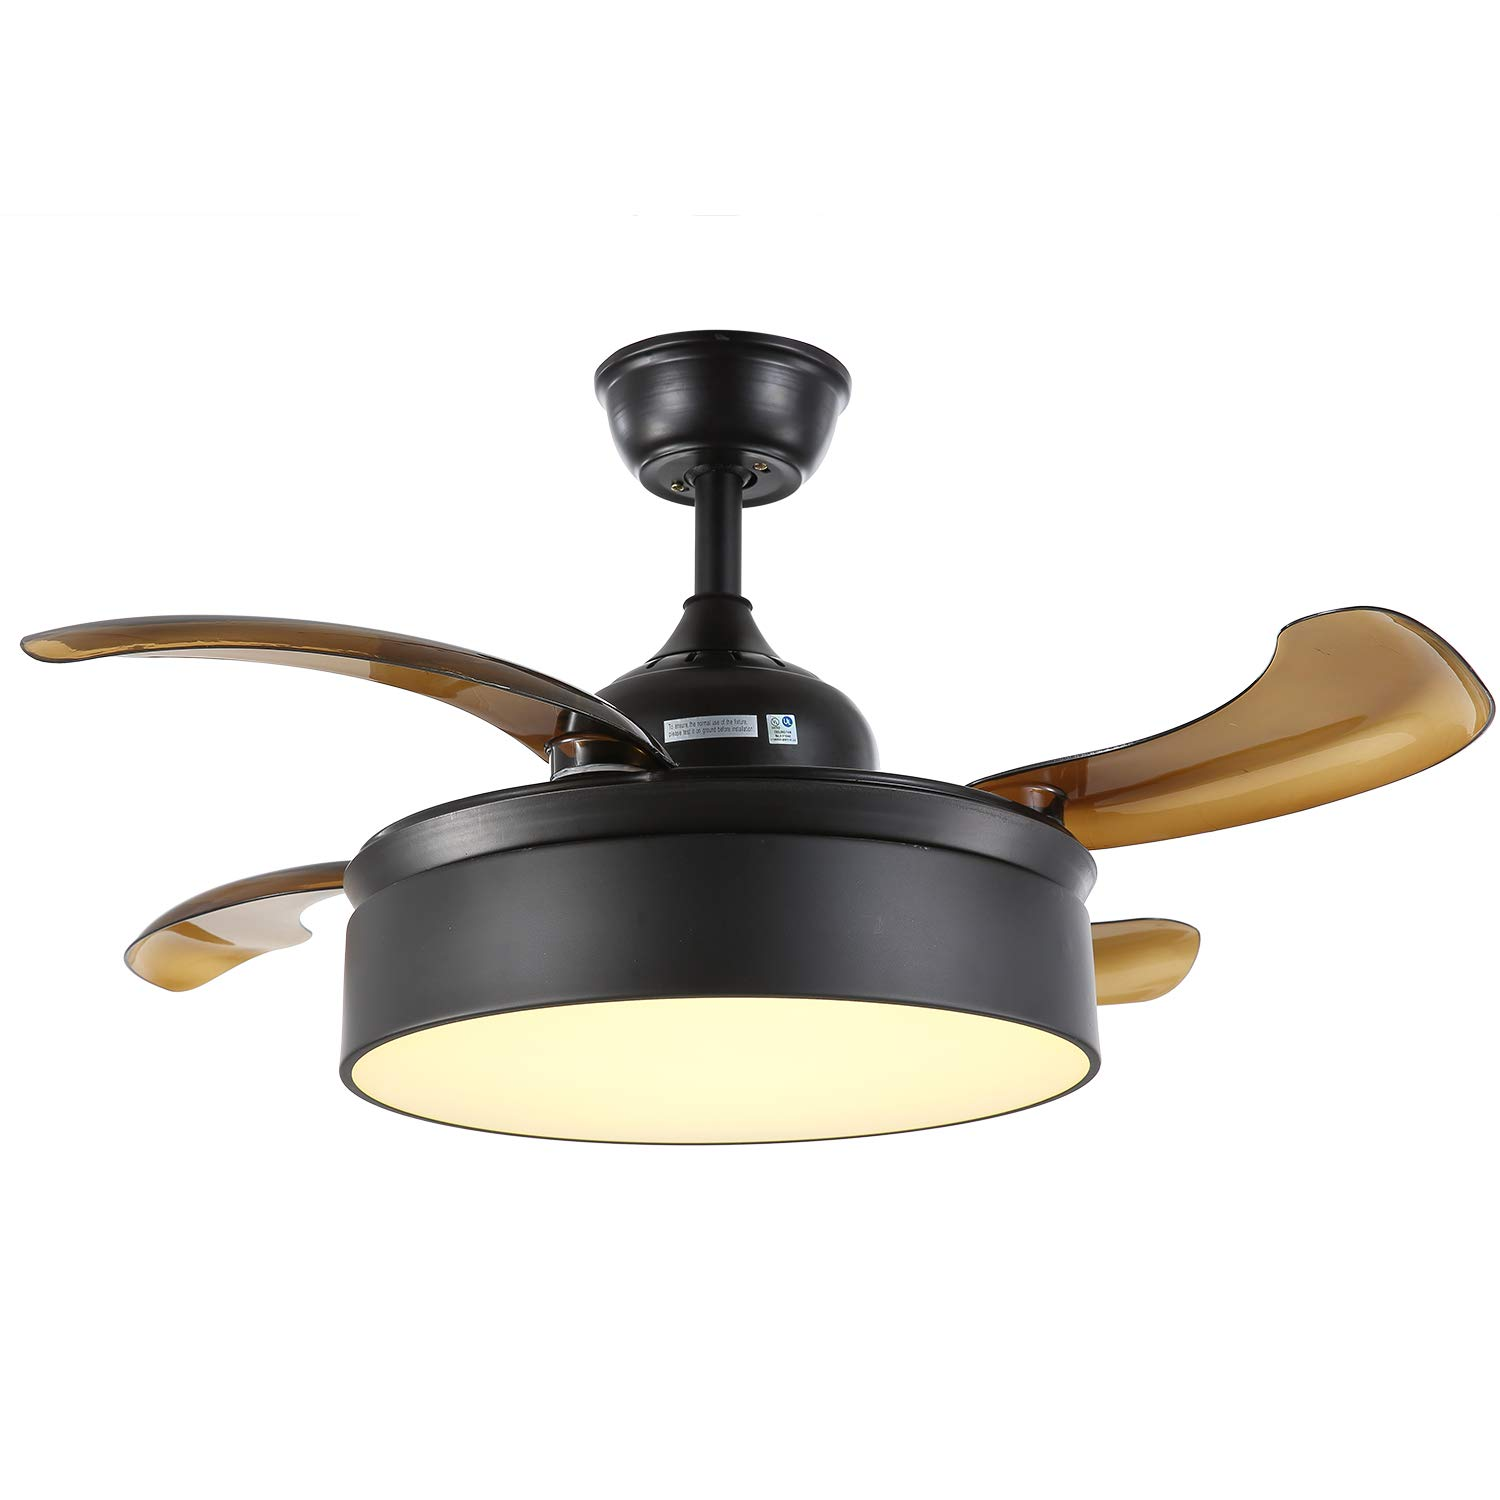 Moooni 36 inch Invisible Fandelier Retractable Ceiling Fans with ...